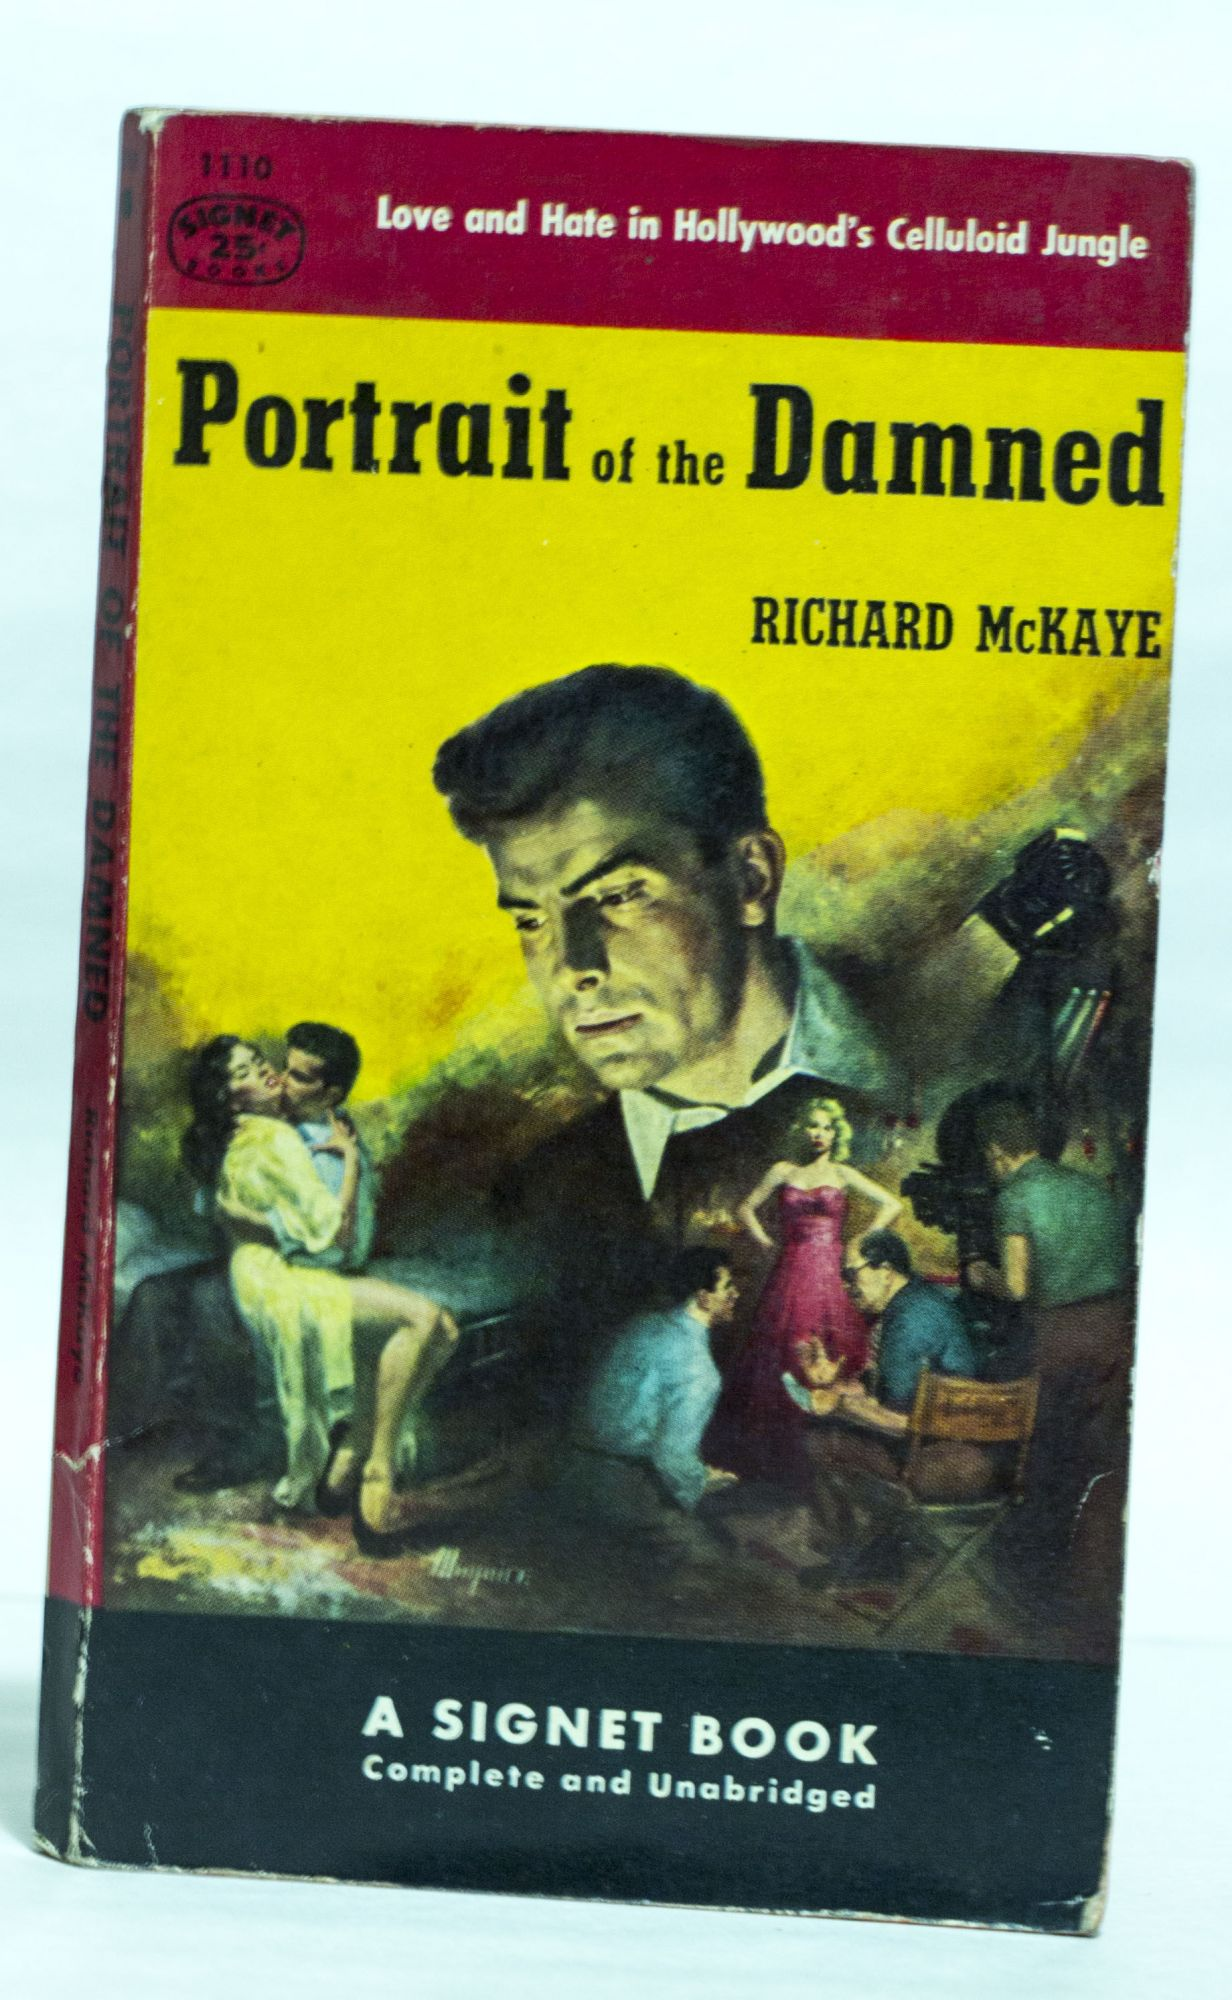 Portrait of the Damned 1110 Complete and Unabridged